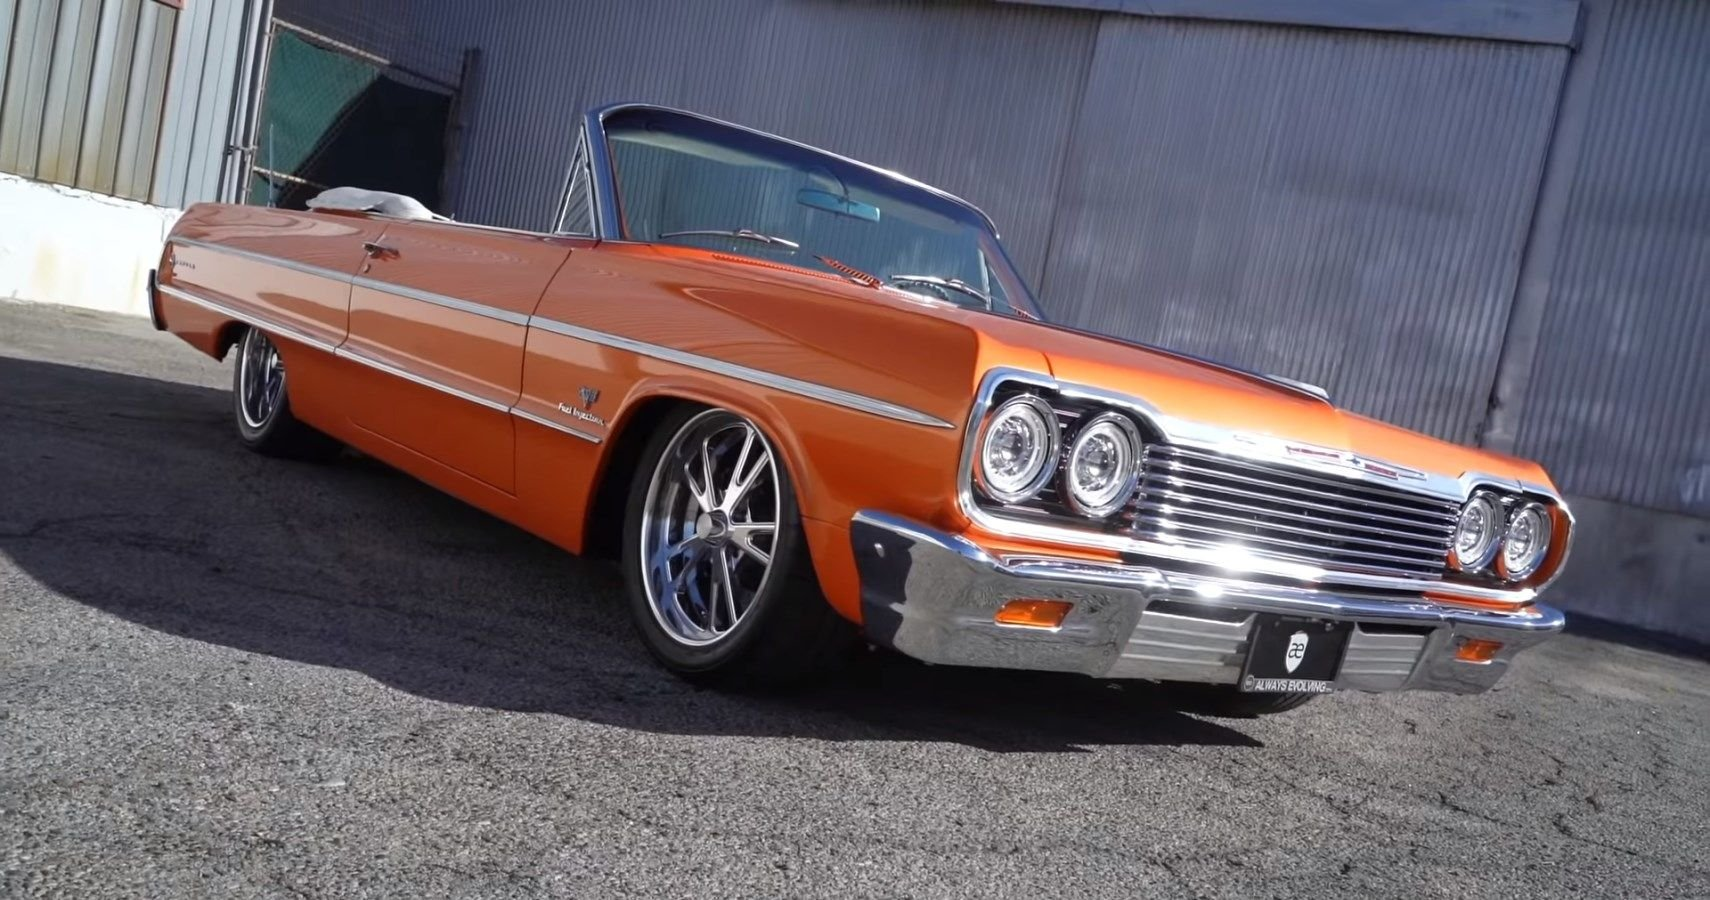 This Air-Suspended 1964 Chevrolet Impala SS Convertible Has A Special Personal Story